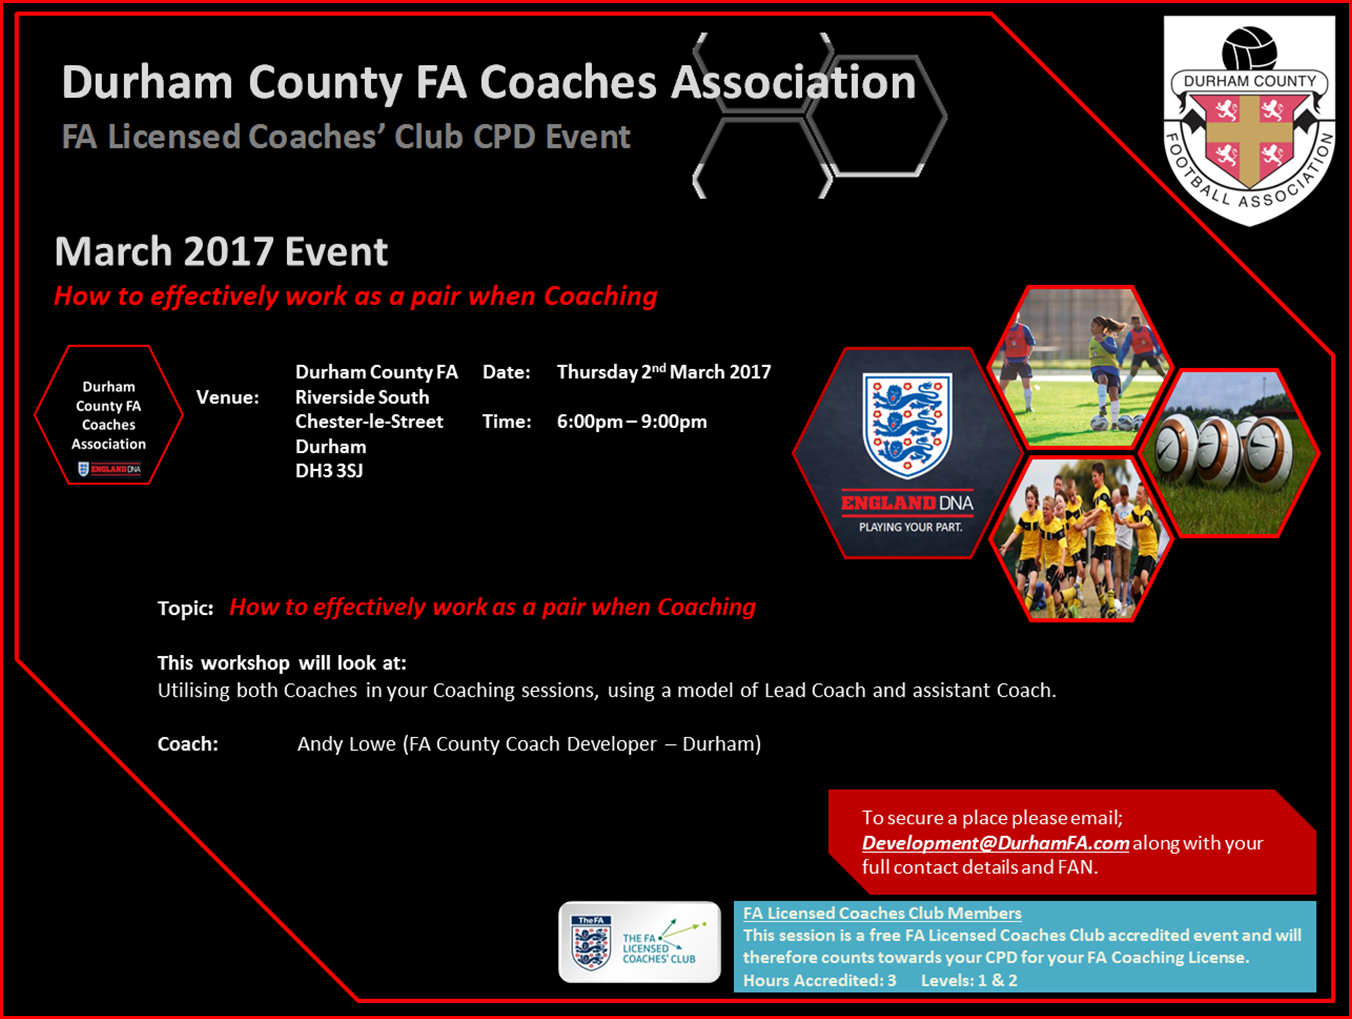 Durham County FA Coaches Association